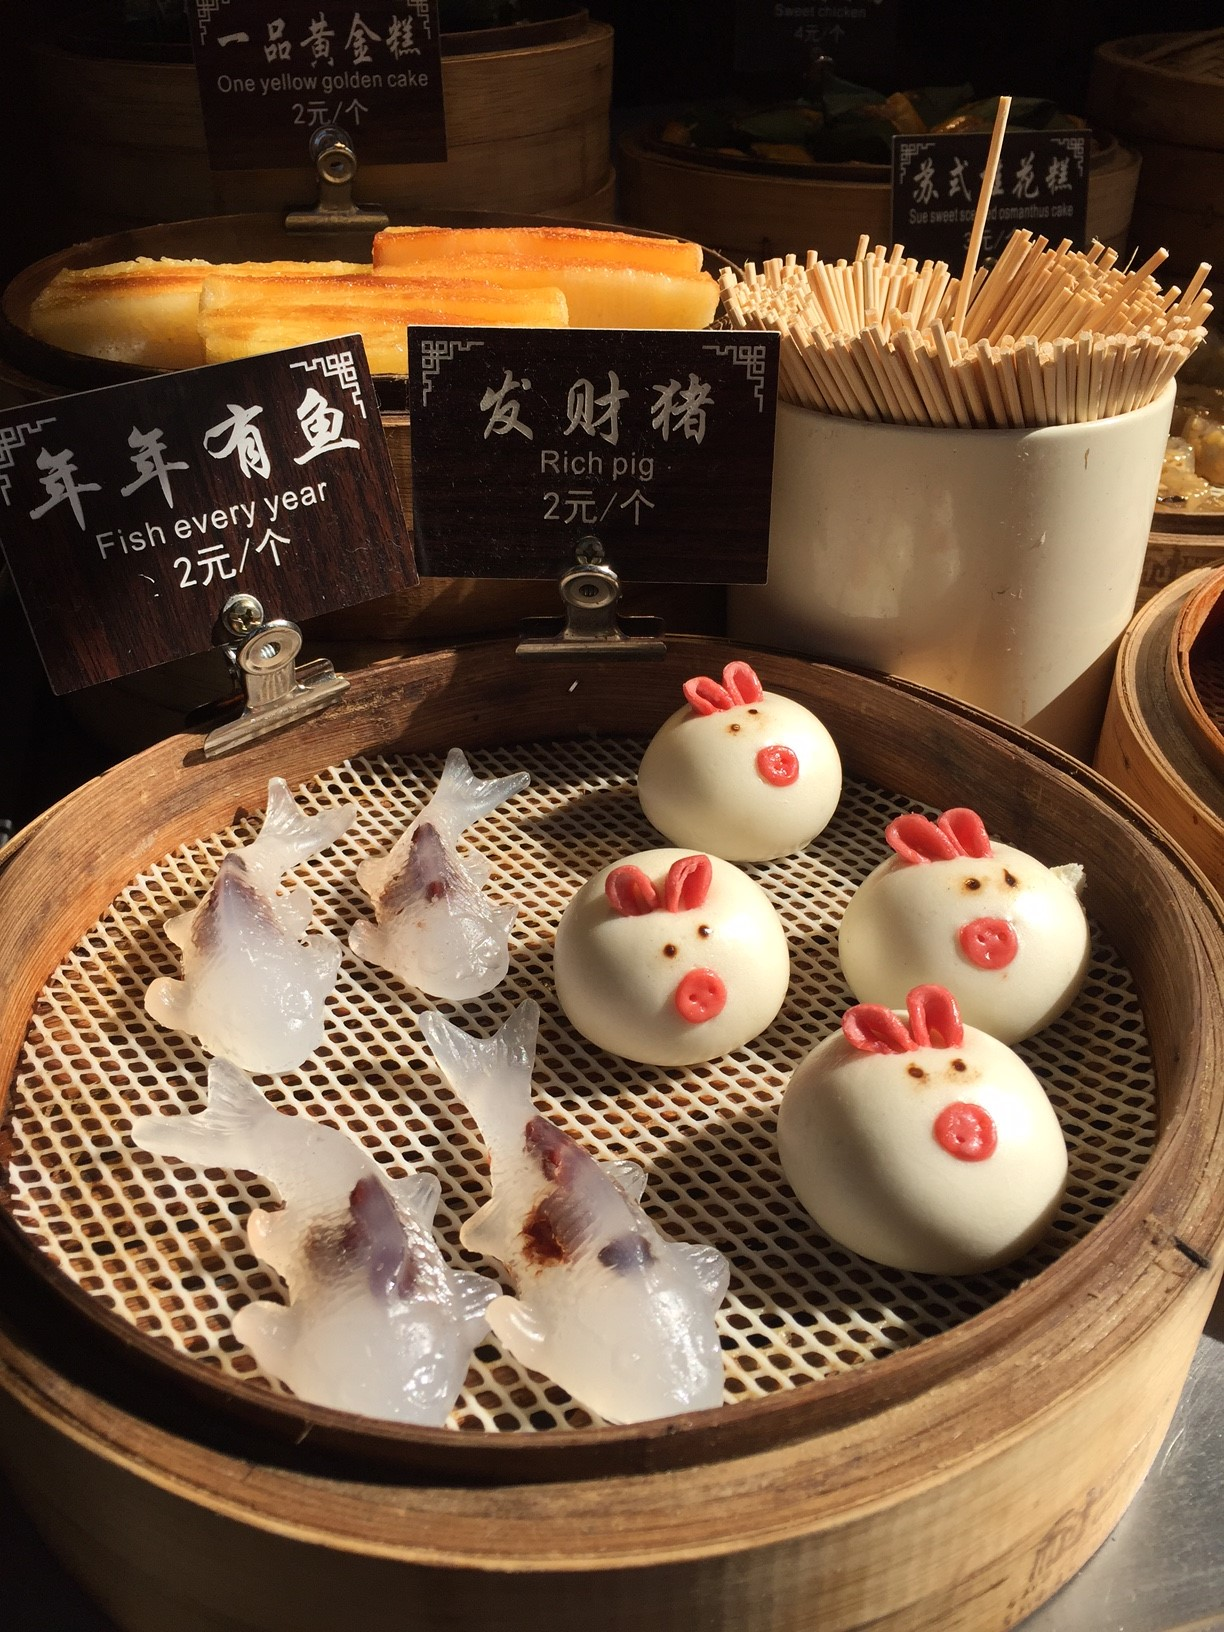 impressions from Suzhou, location of the non-contact AFM conference on the menu: AFM and other delicacies